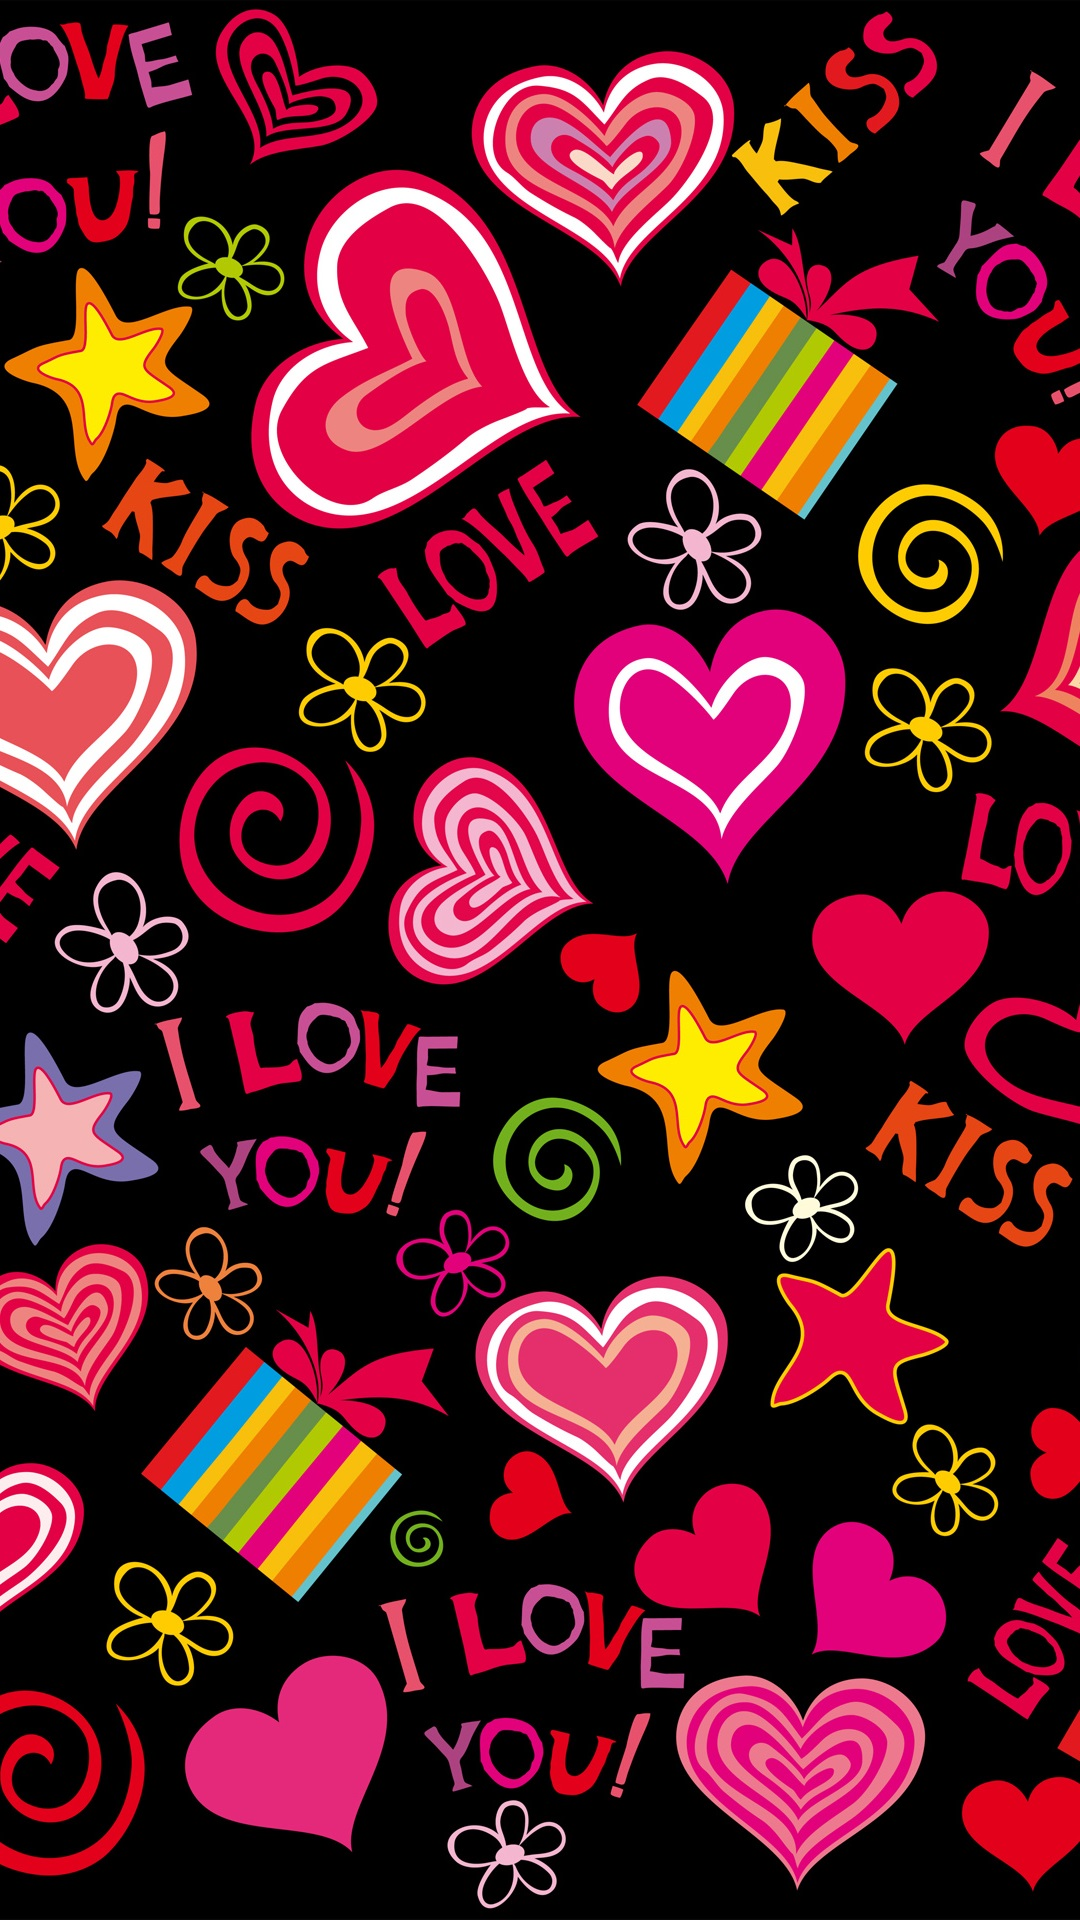 Best Love Wallpapers For Iphone 6 : colorful love hearts, sweet, vector, romantic iPhone Wallpaper 1080x1920 iPhone 6 (6S) Plus ...